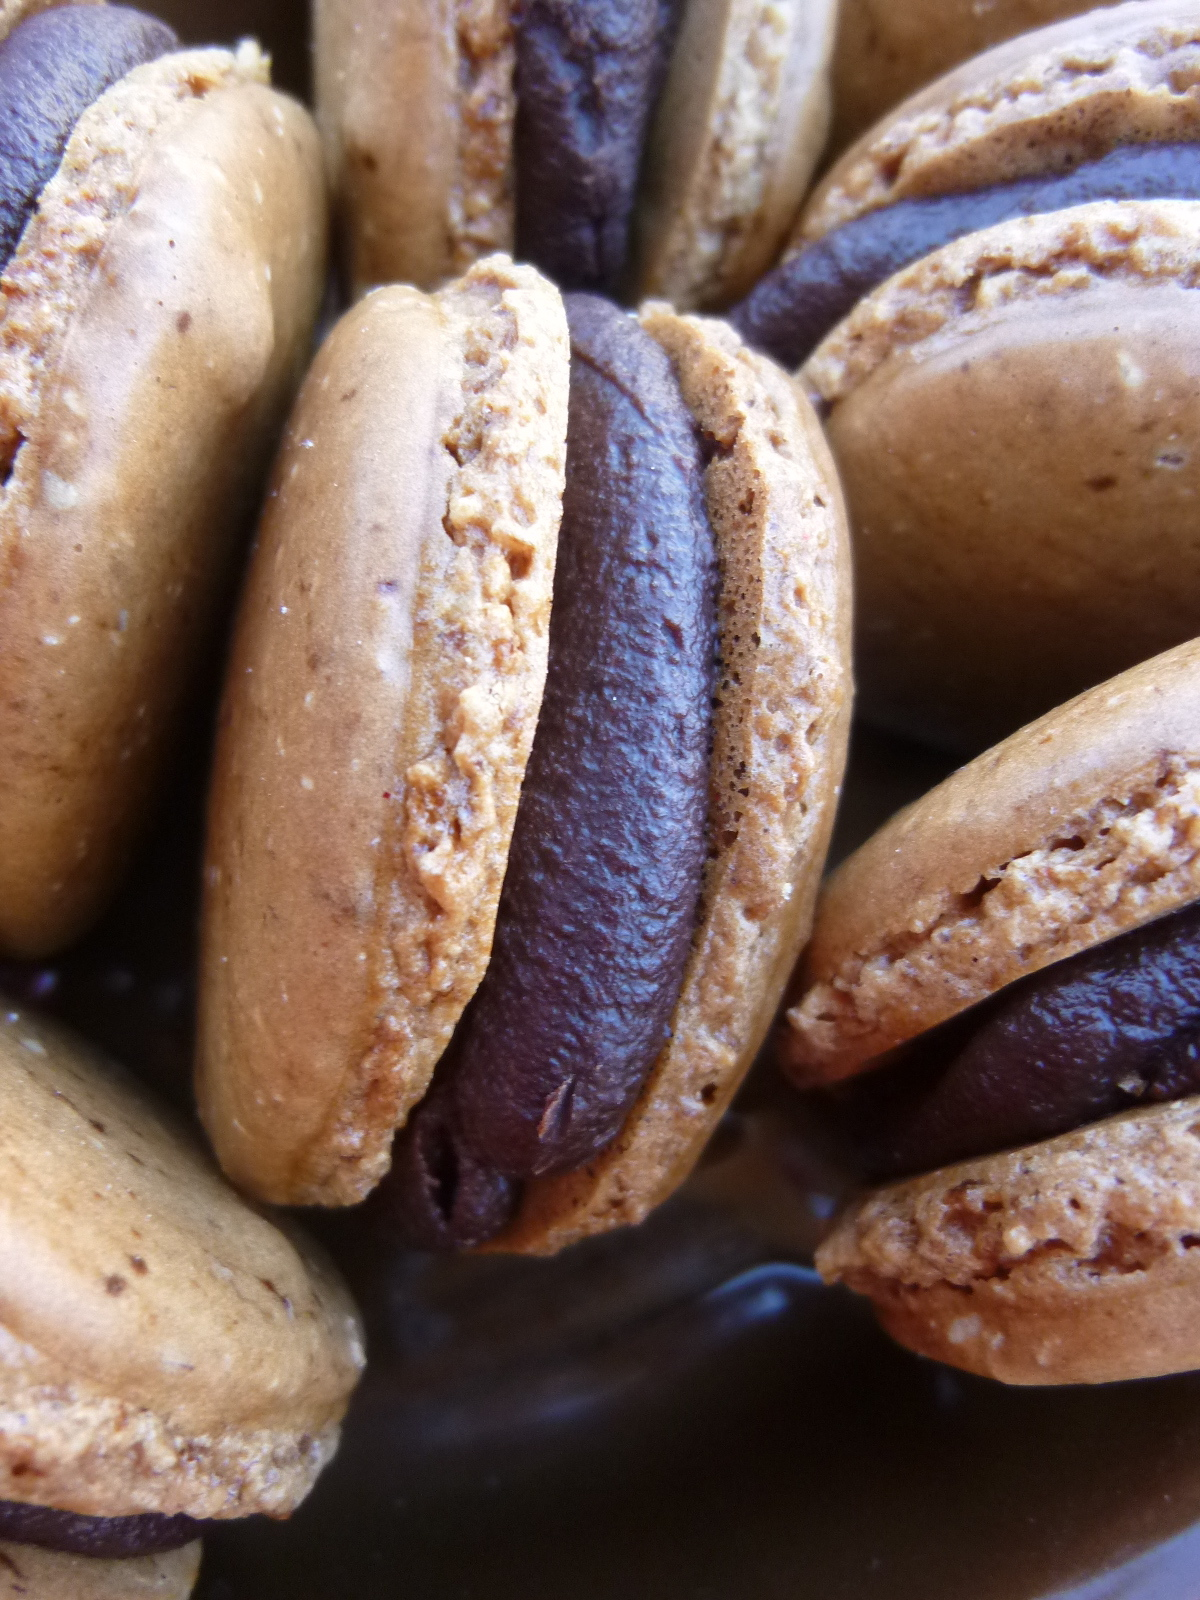 ... Mad Hausfrau: Espresso Macarons with Chocolate Rum Ganache Filling